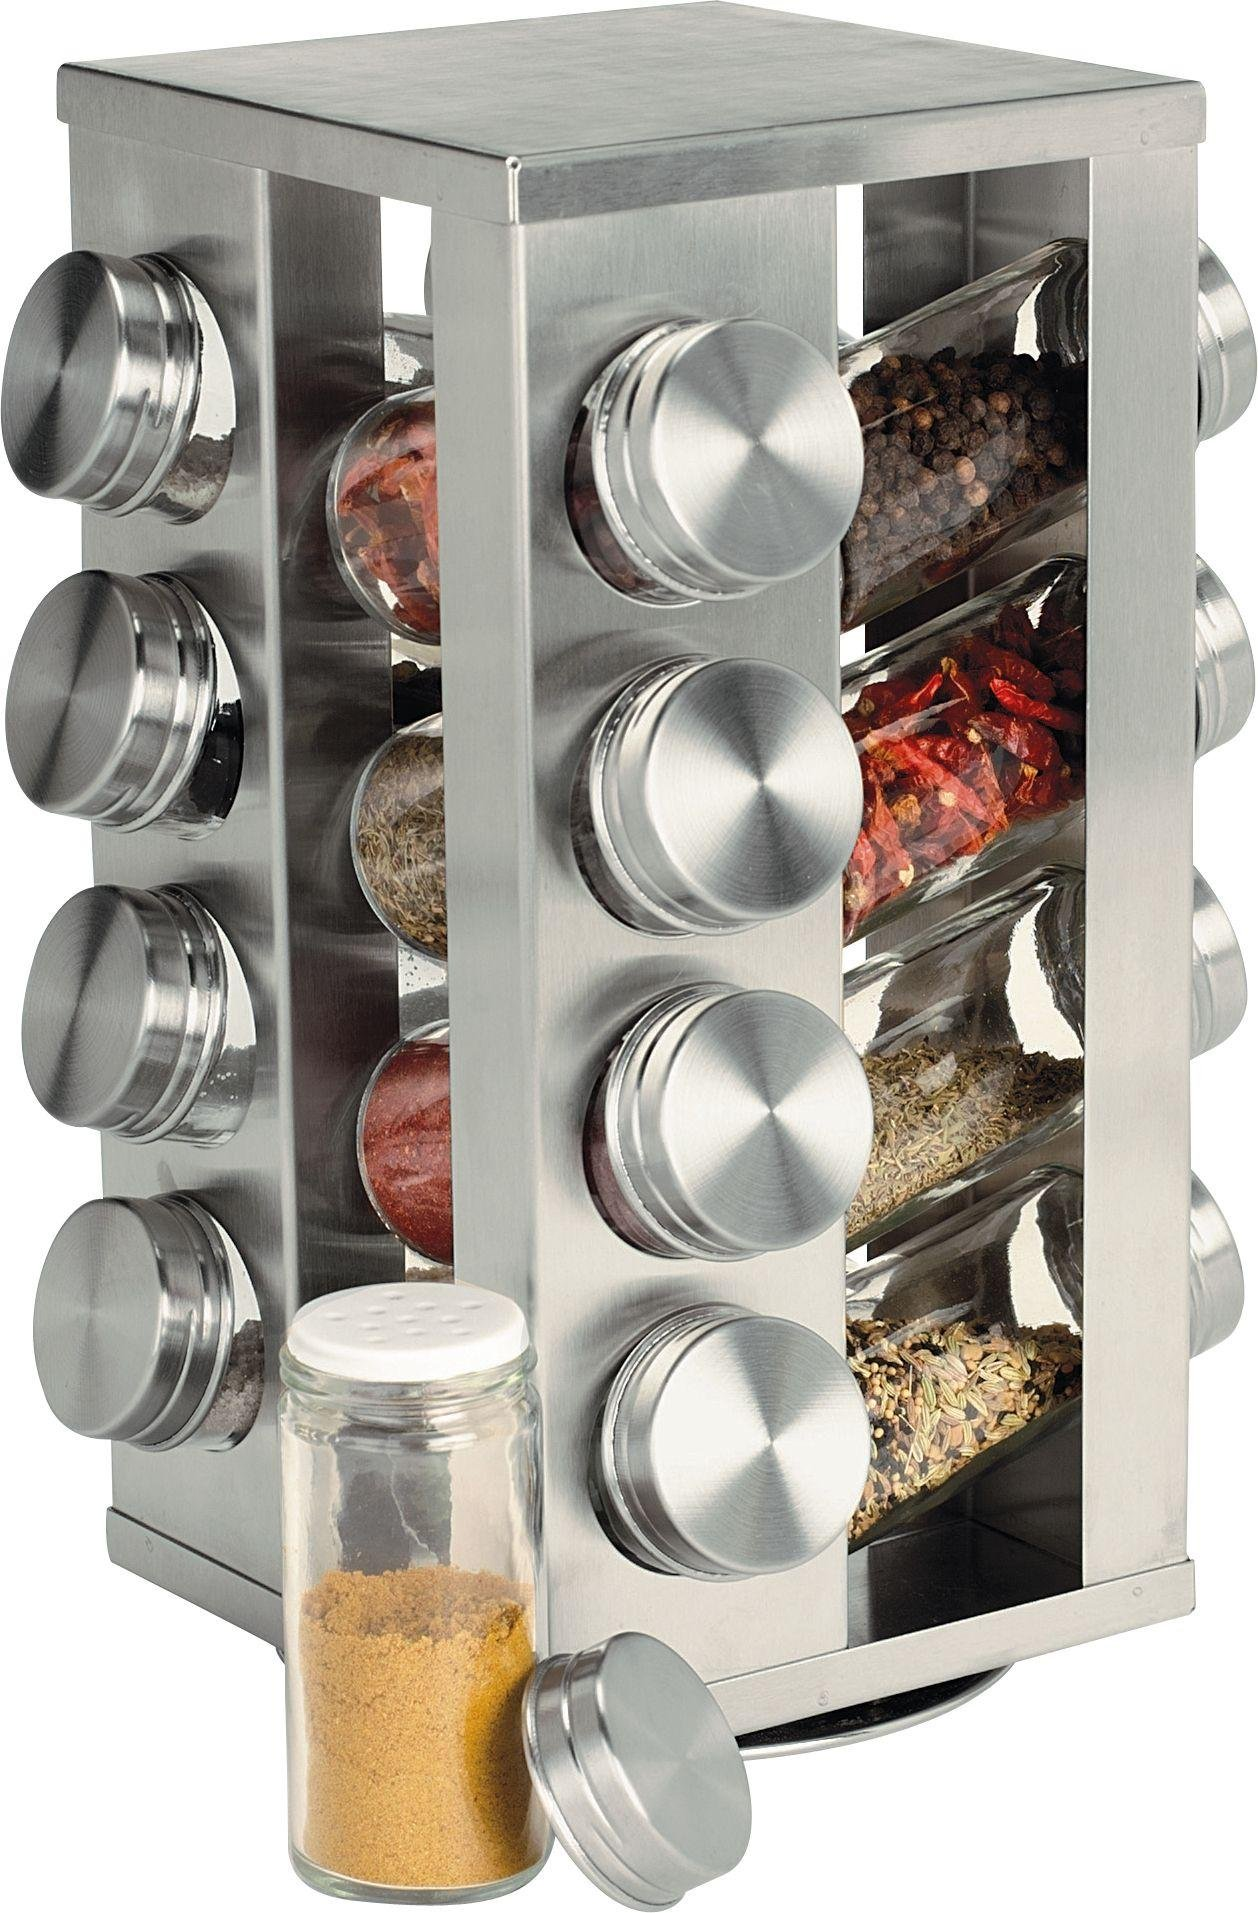 Image of HOME - 16 Jar Stainless Steel Revolving Spice Rack